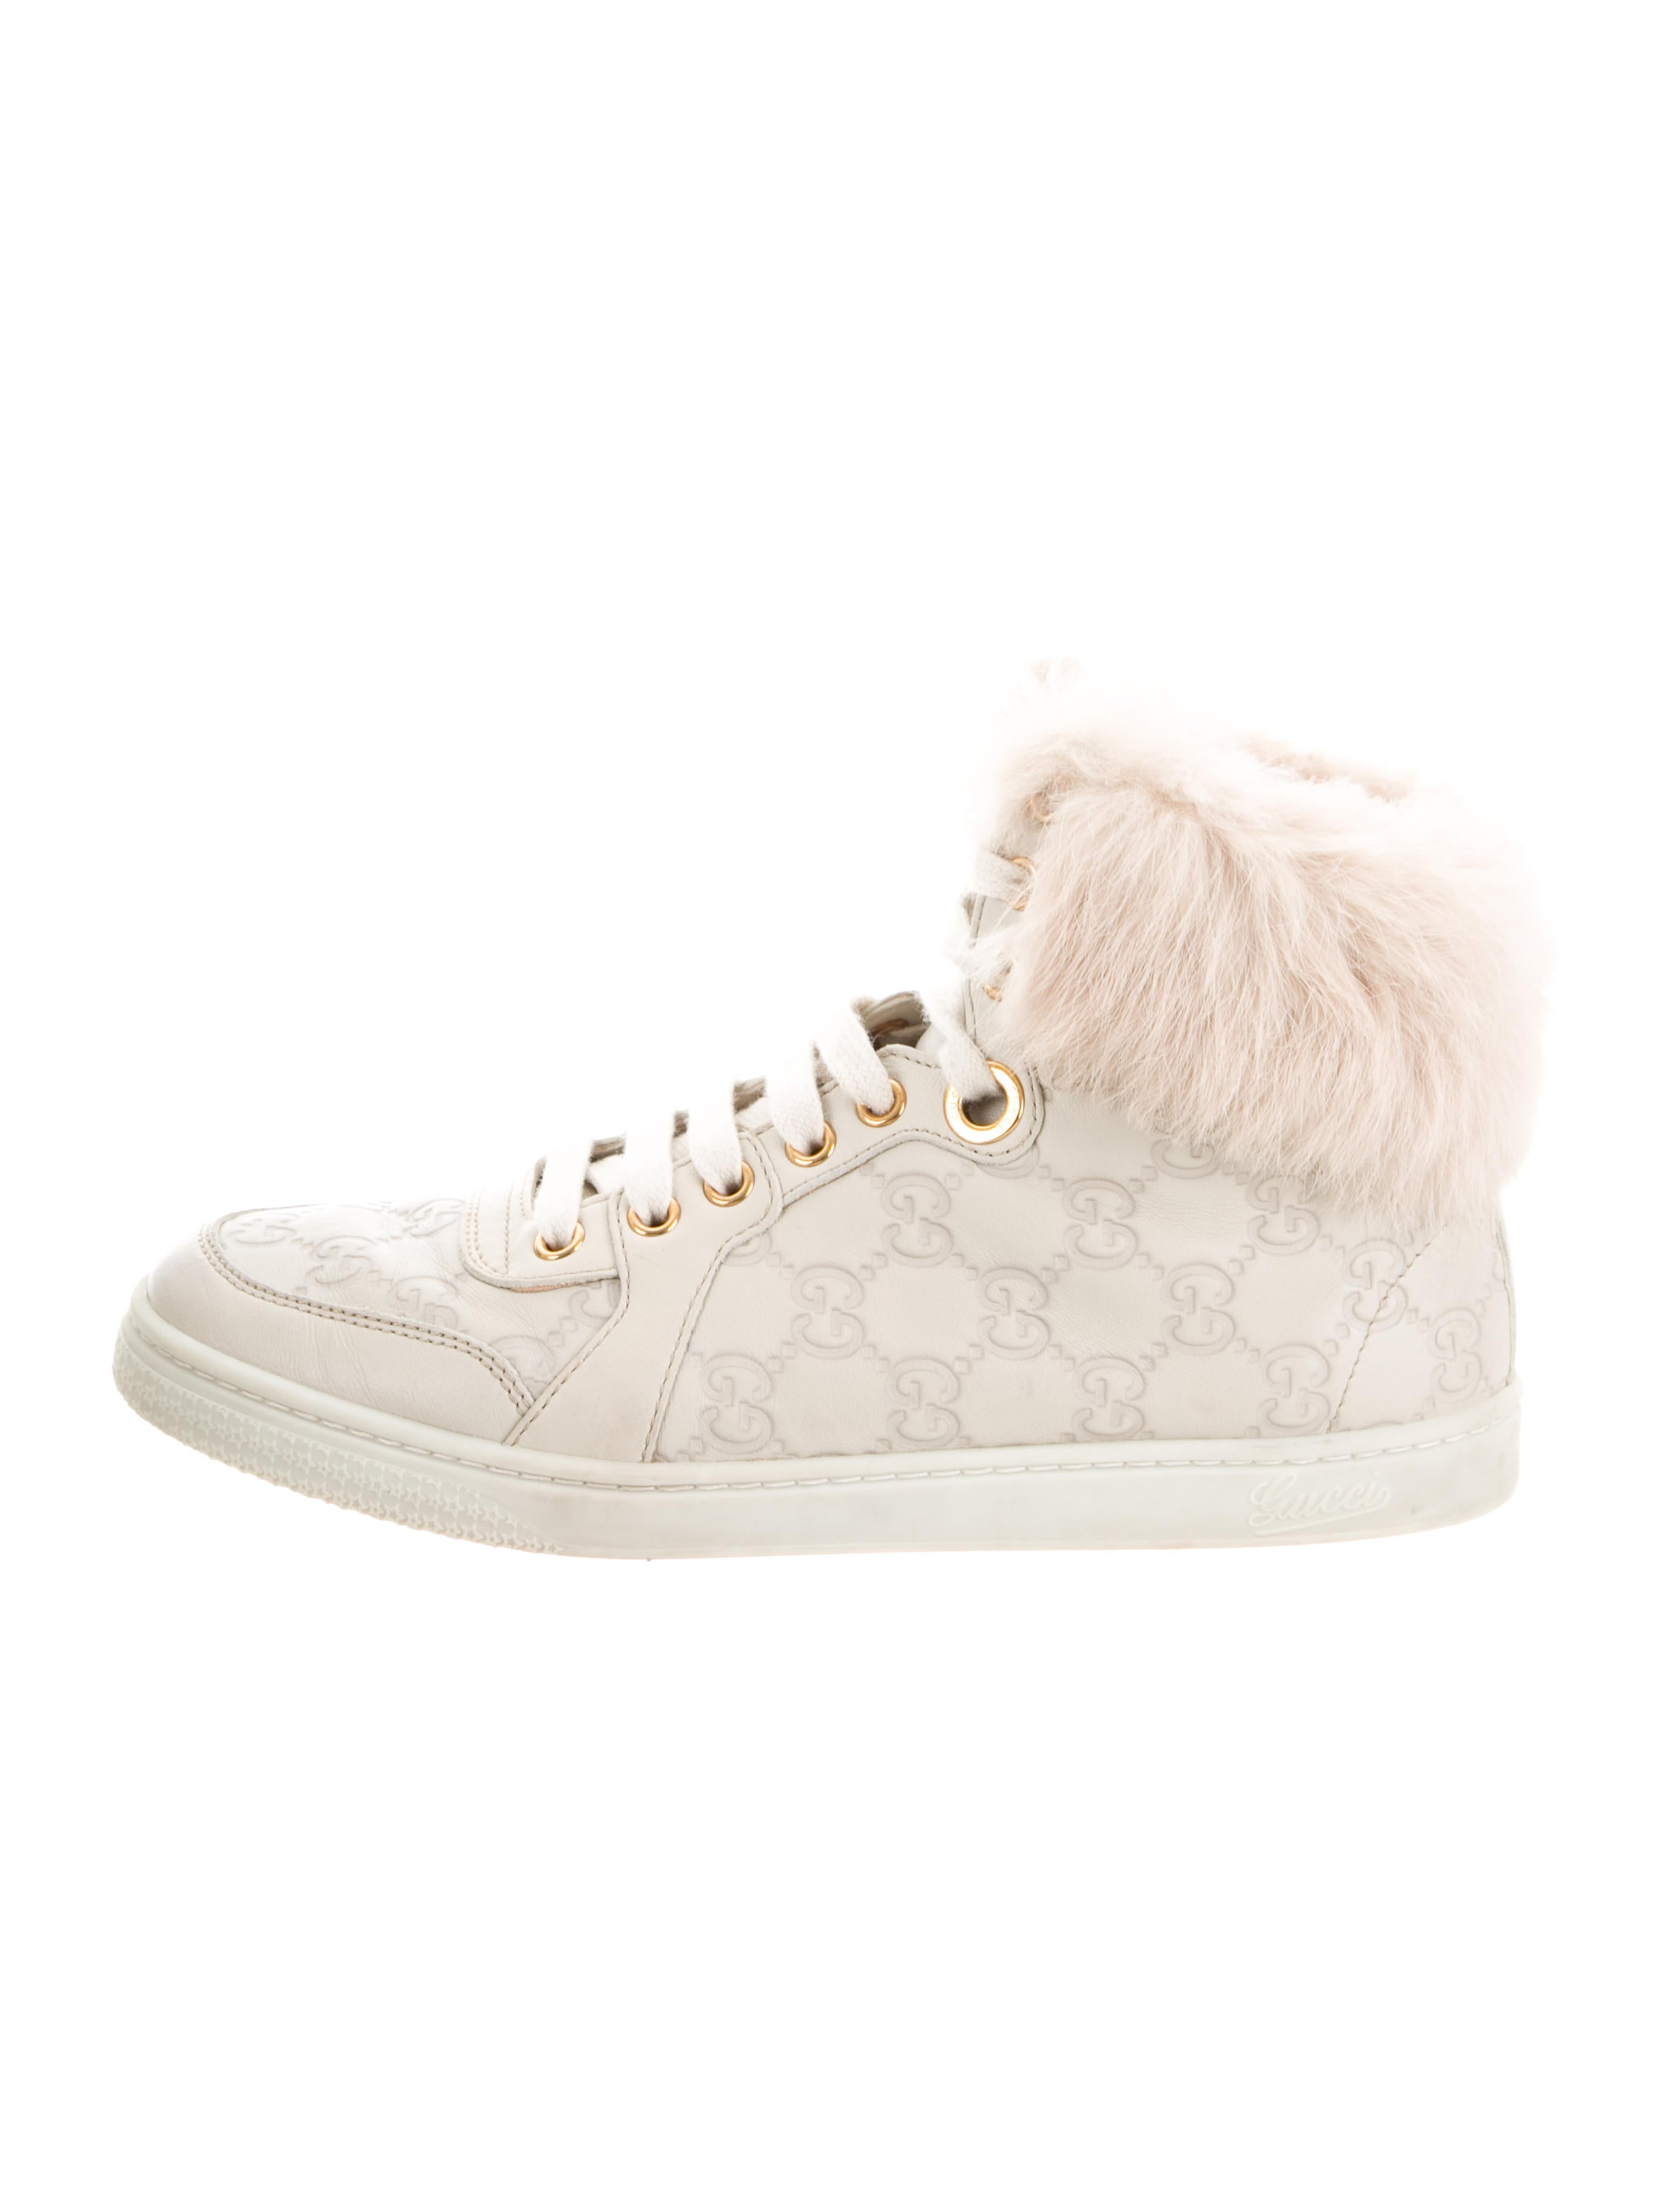 363beb8df4d Gucci Coda Guccissima Sneakers - Shoes - GUC245973